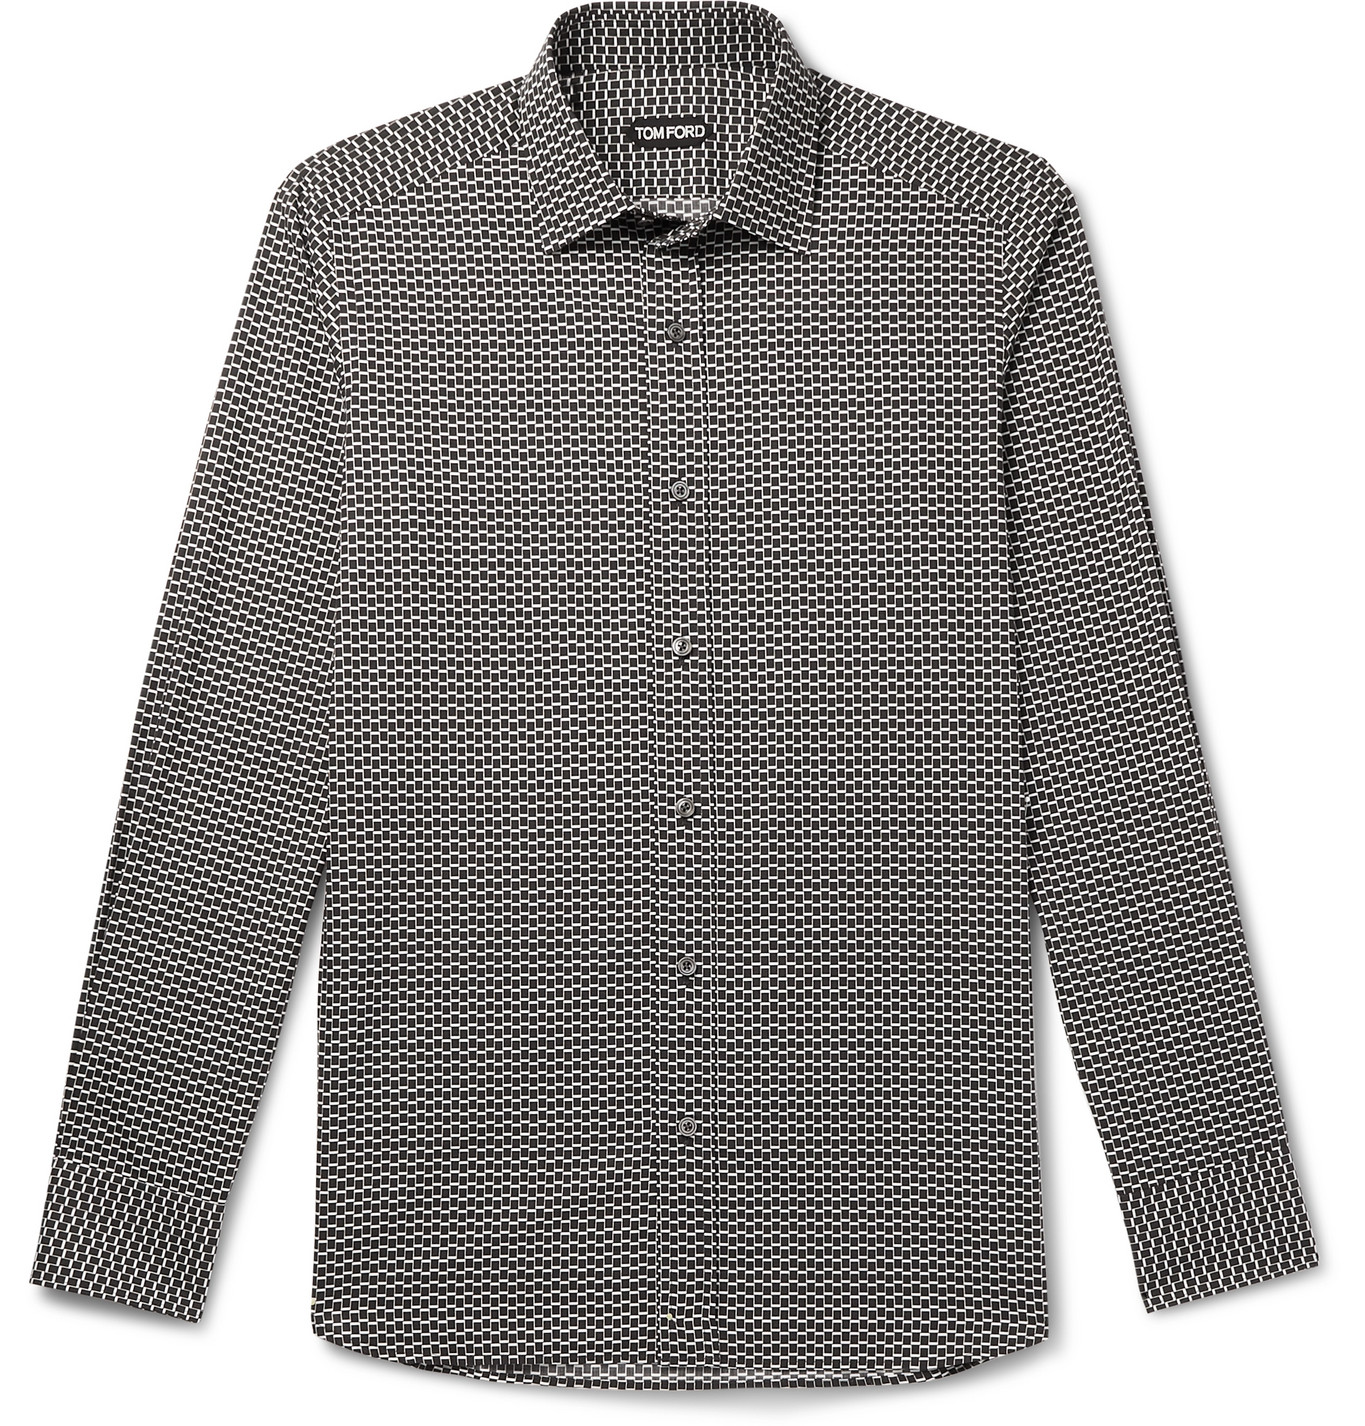 TOM FORD - Printed Cotton and Lyocell-Blend Shirt - Men - Black